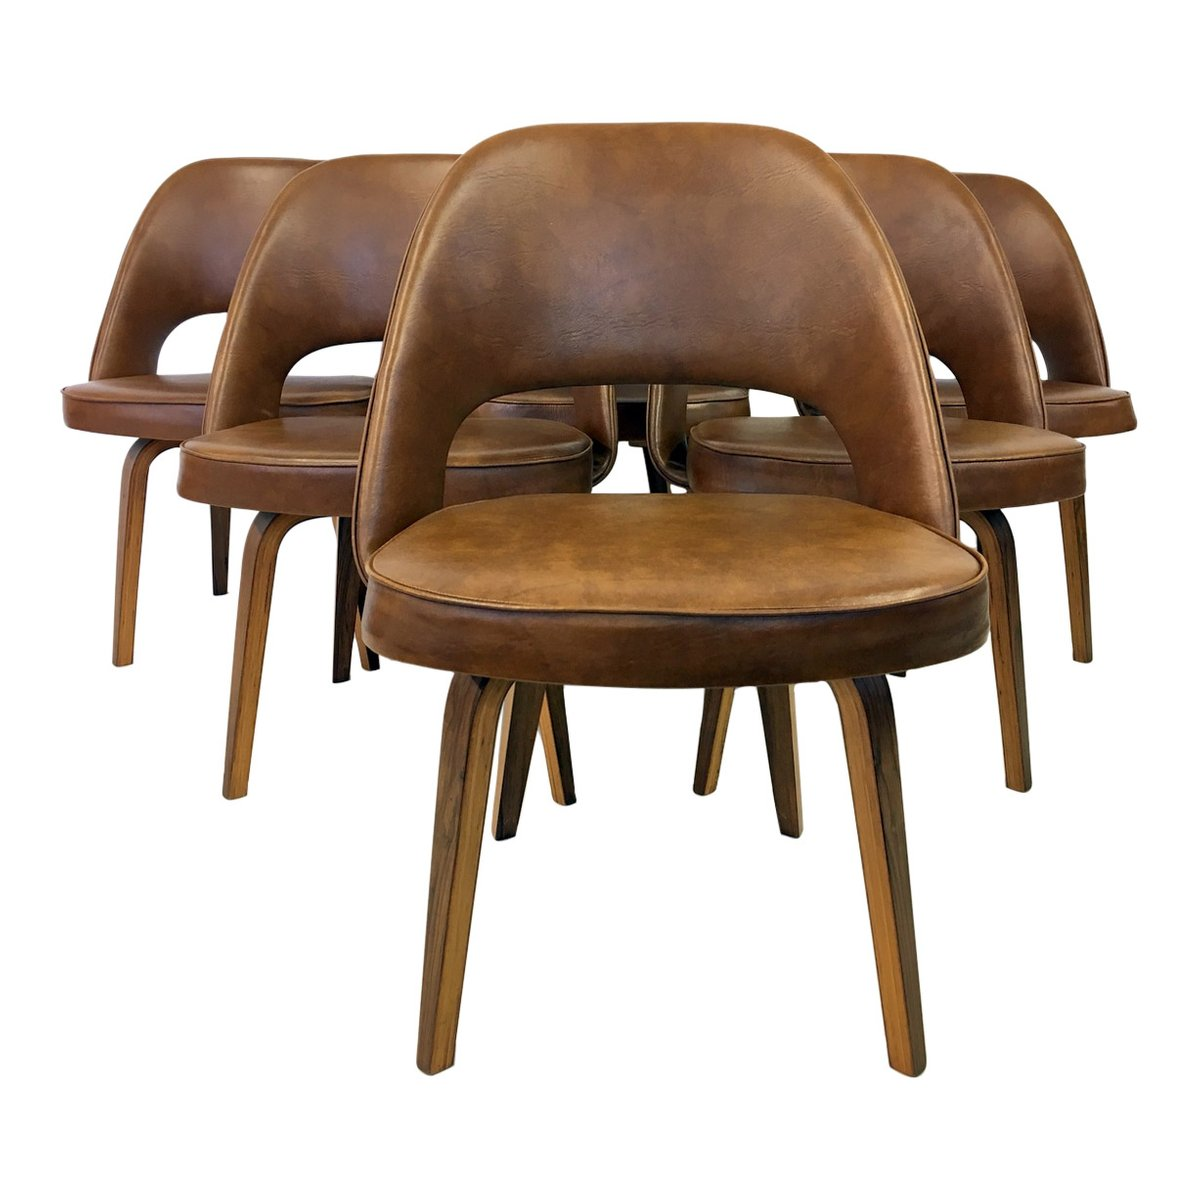 Vintage Executive Chairs by Eero Saarinen for Knoll Set of 6 for